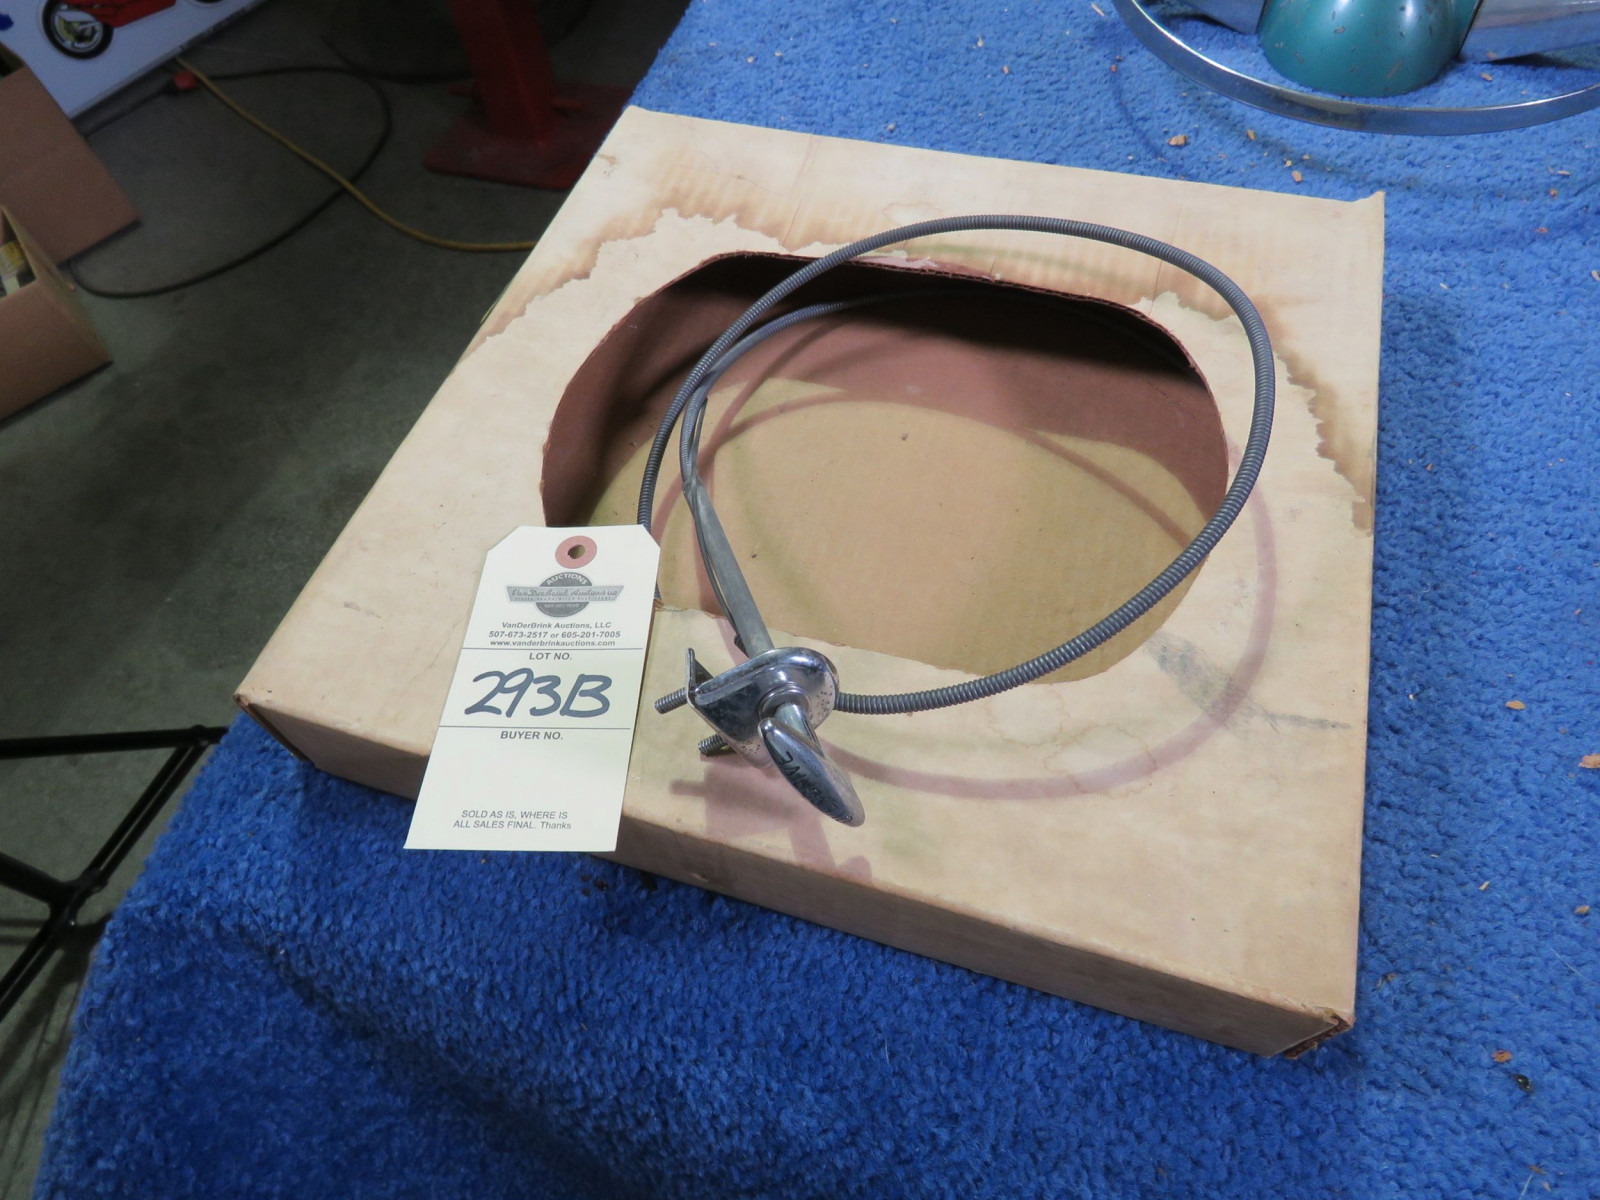 NOS OD Cable - Image 1